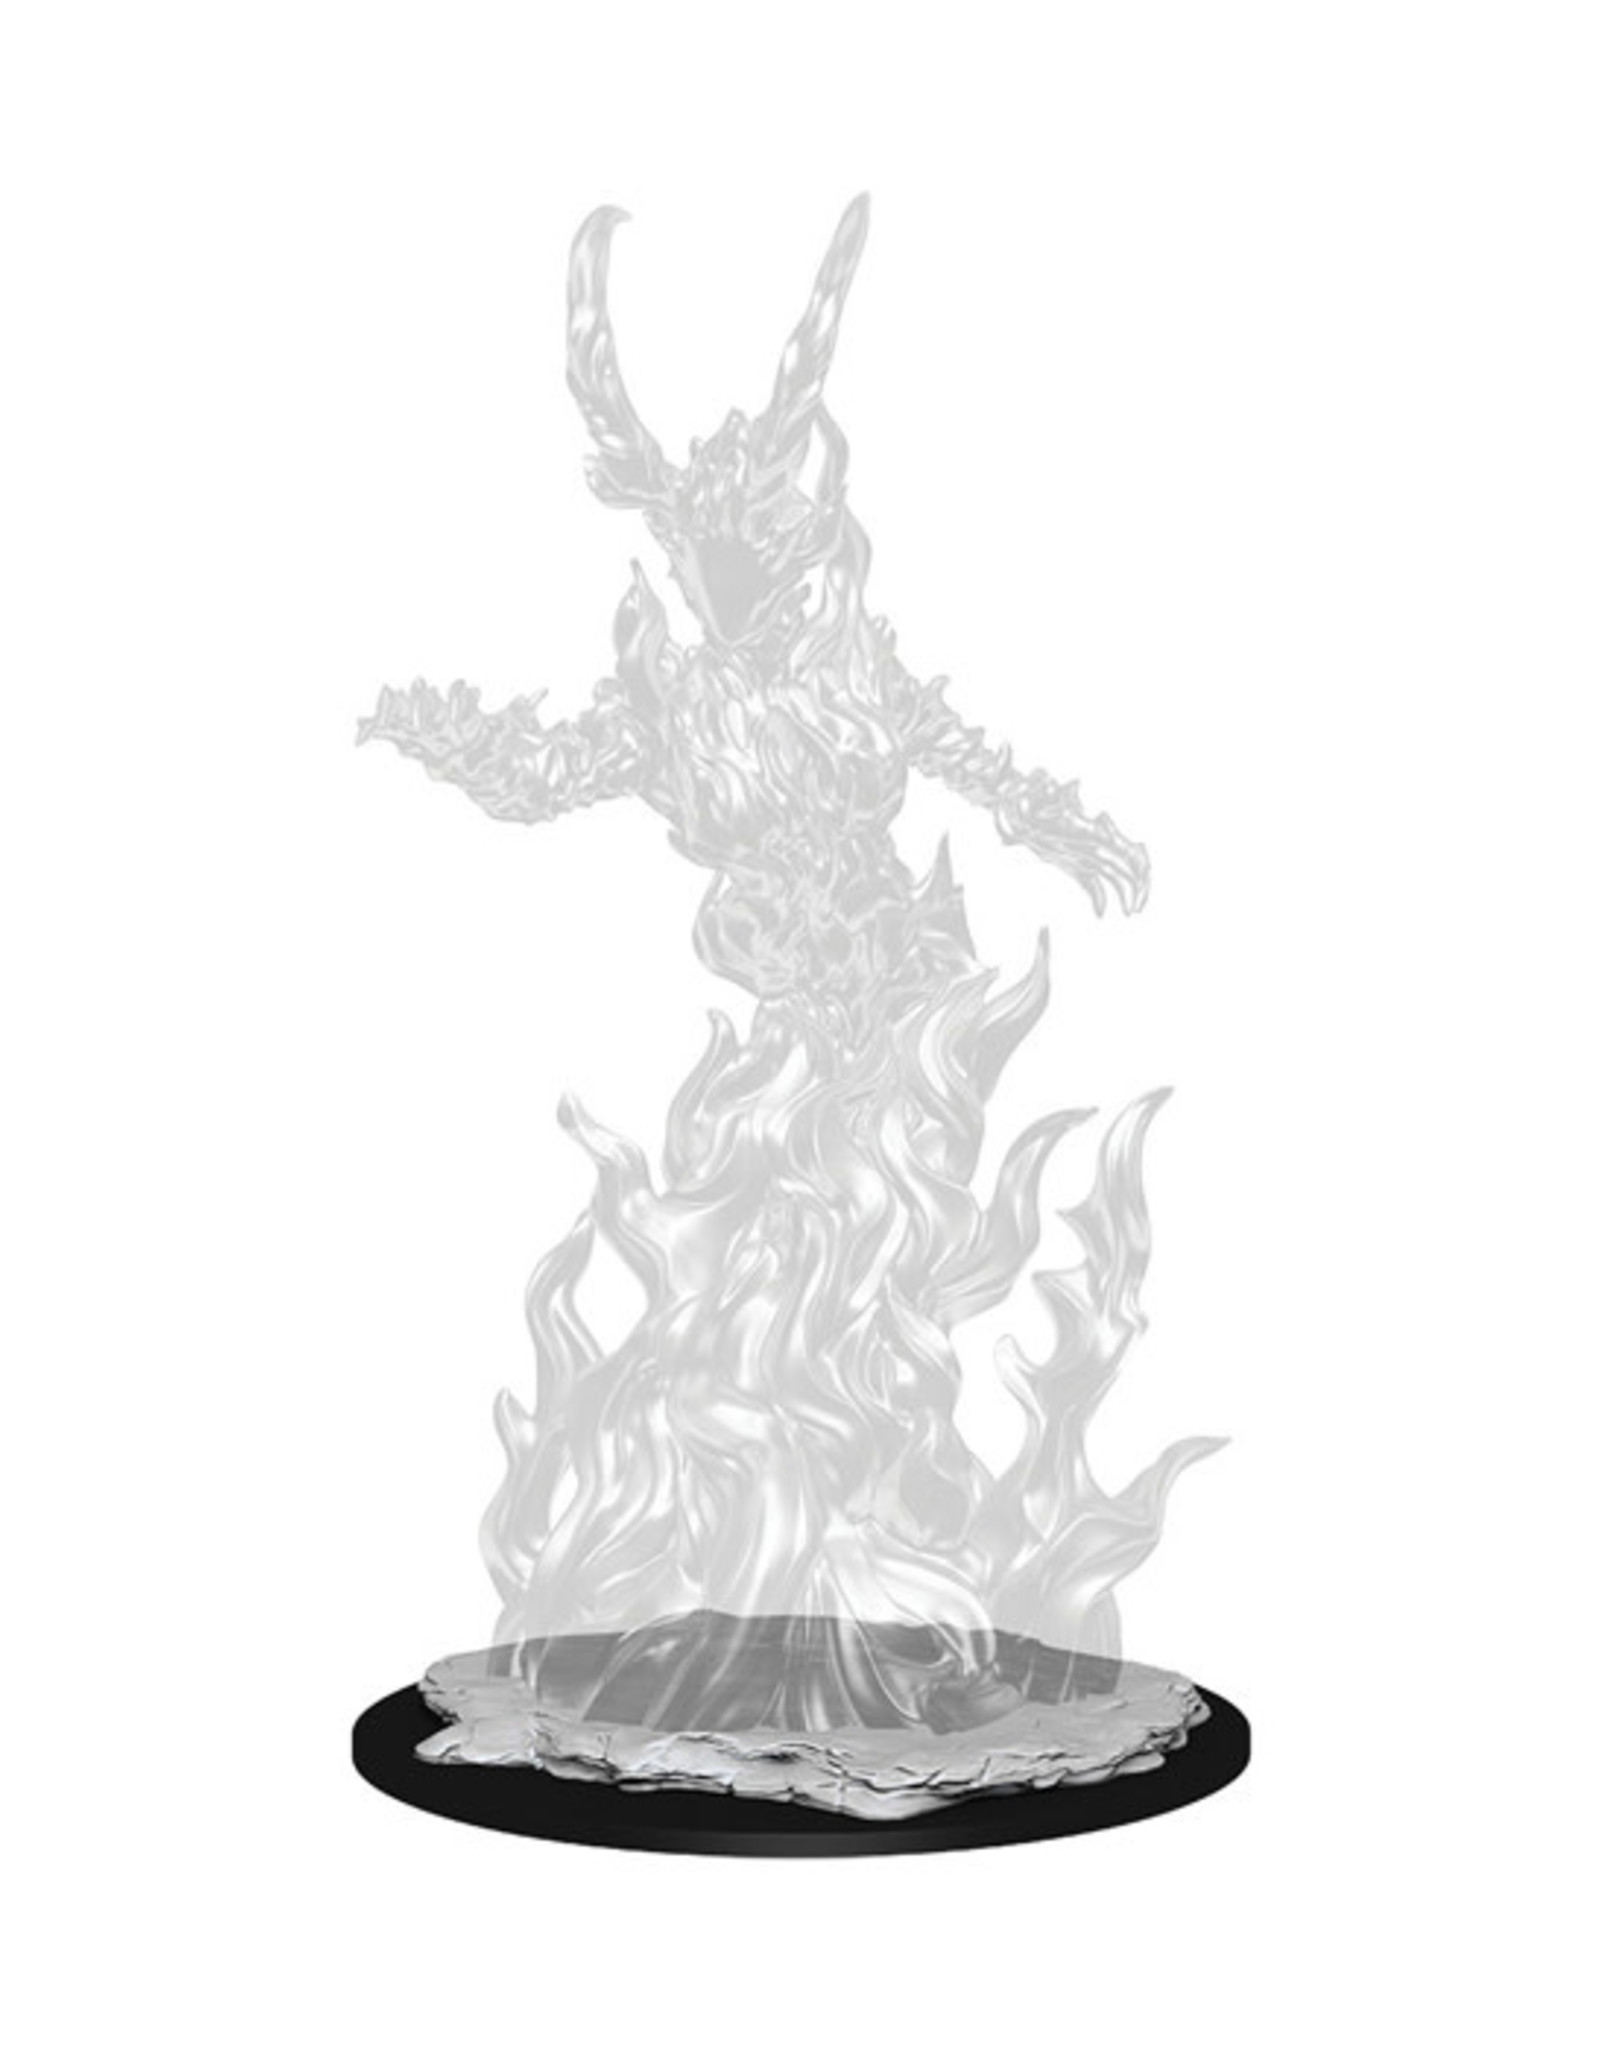 Pathfinder Pathfinder Battles: Deep Cuts - Huge Fire Elemental Lord